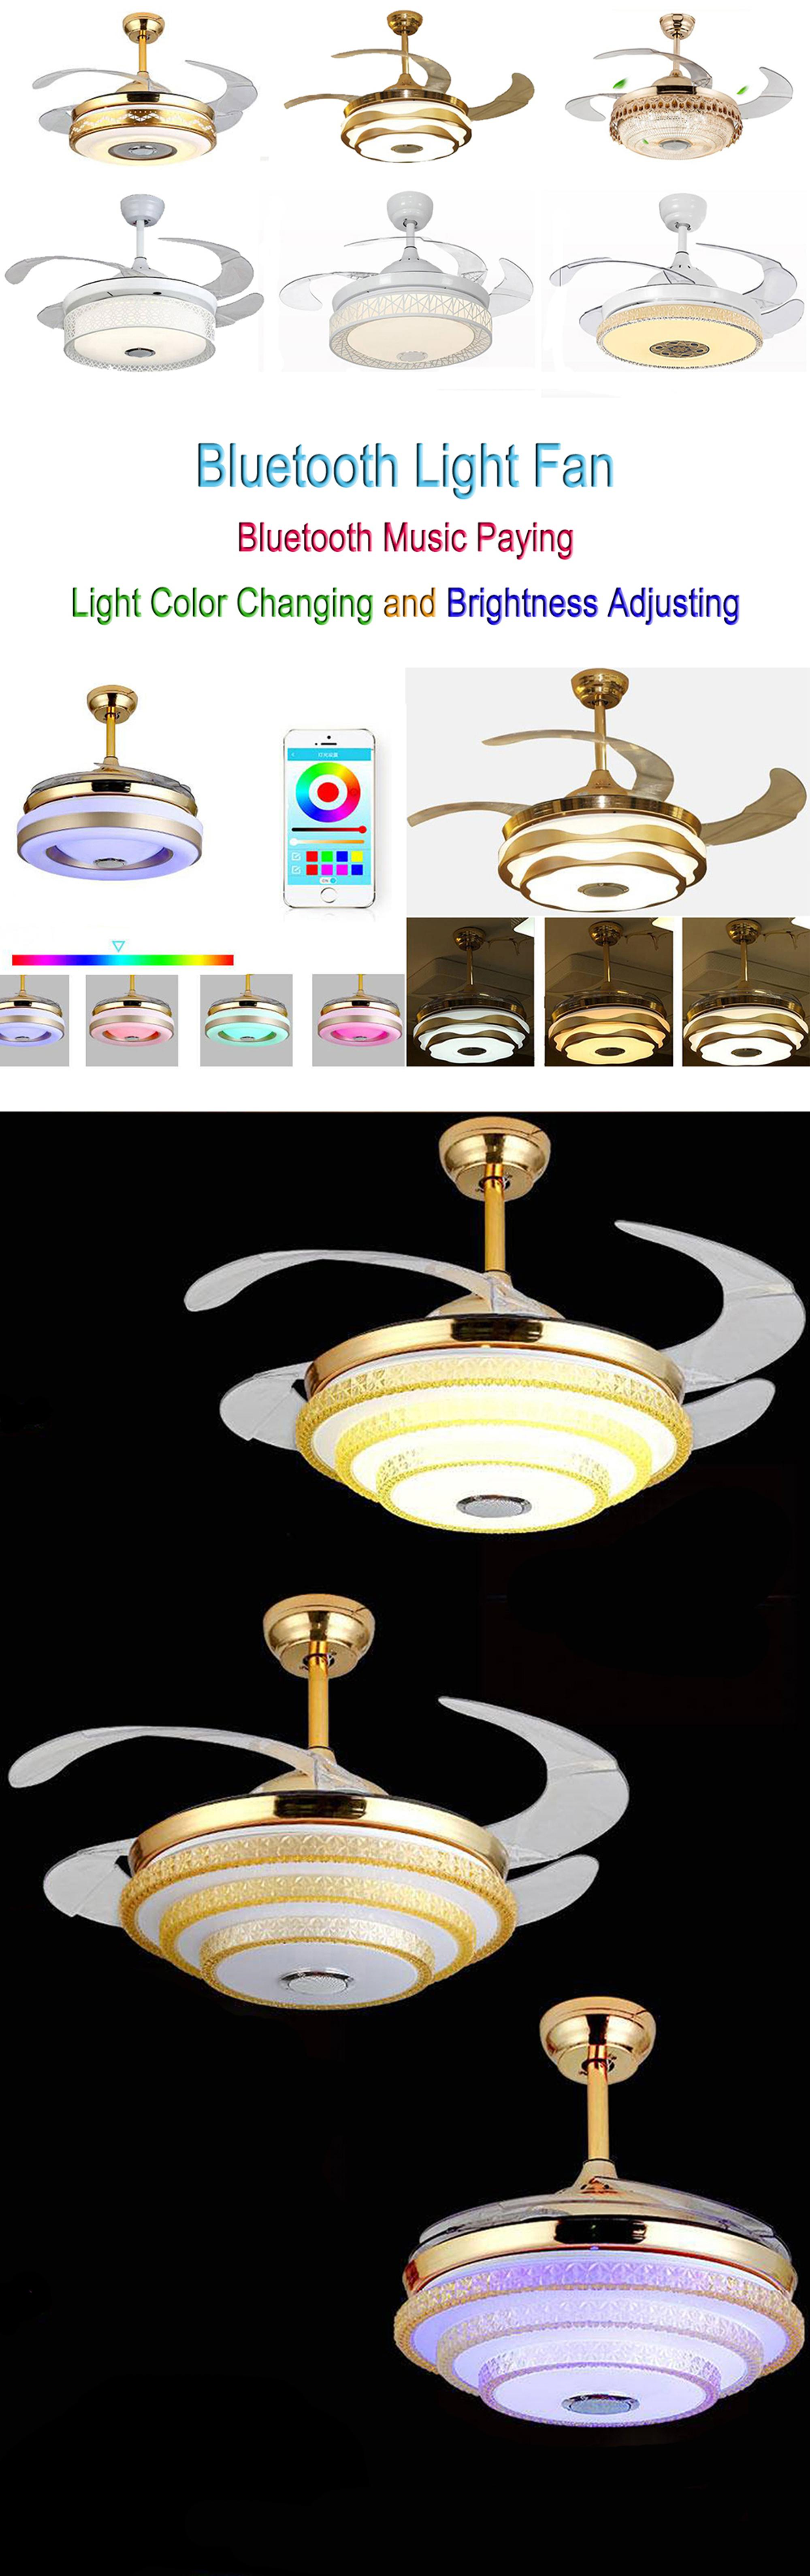 bluetooth led ceiling fan.jpg